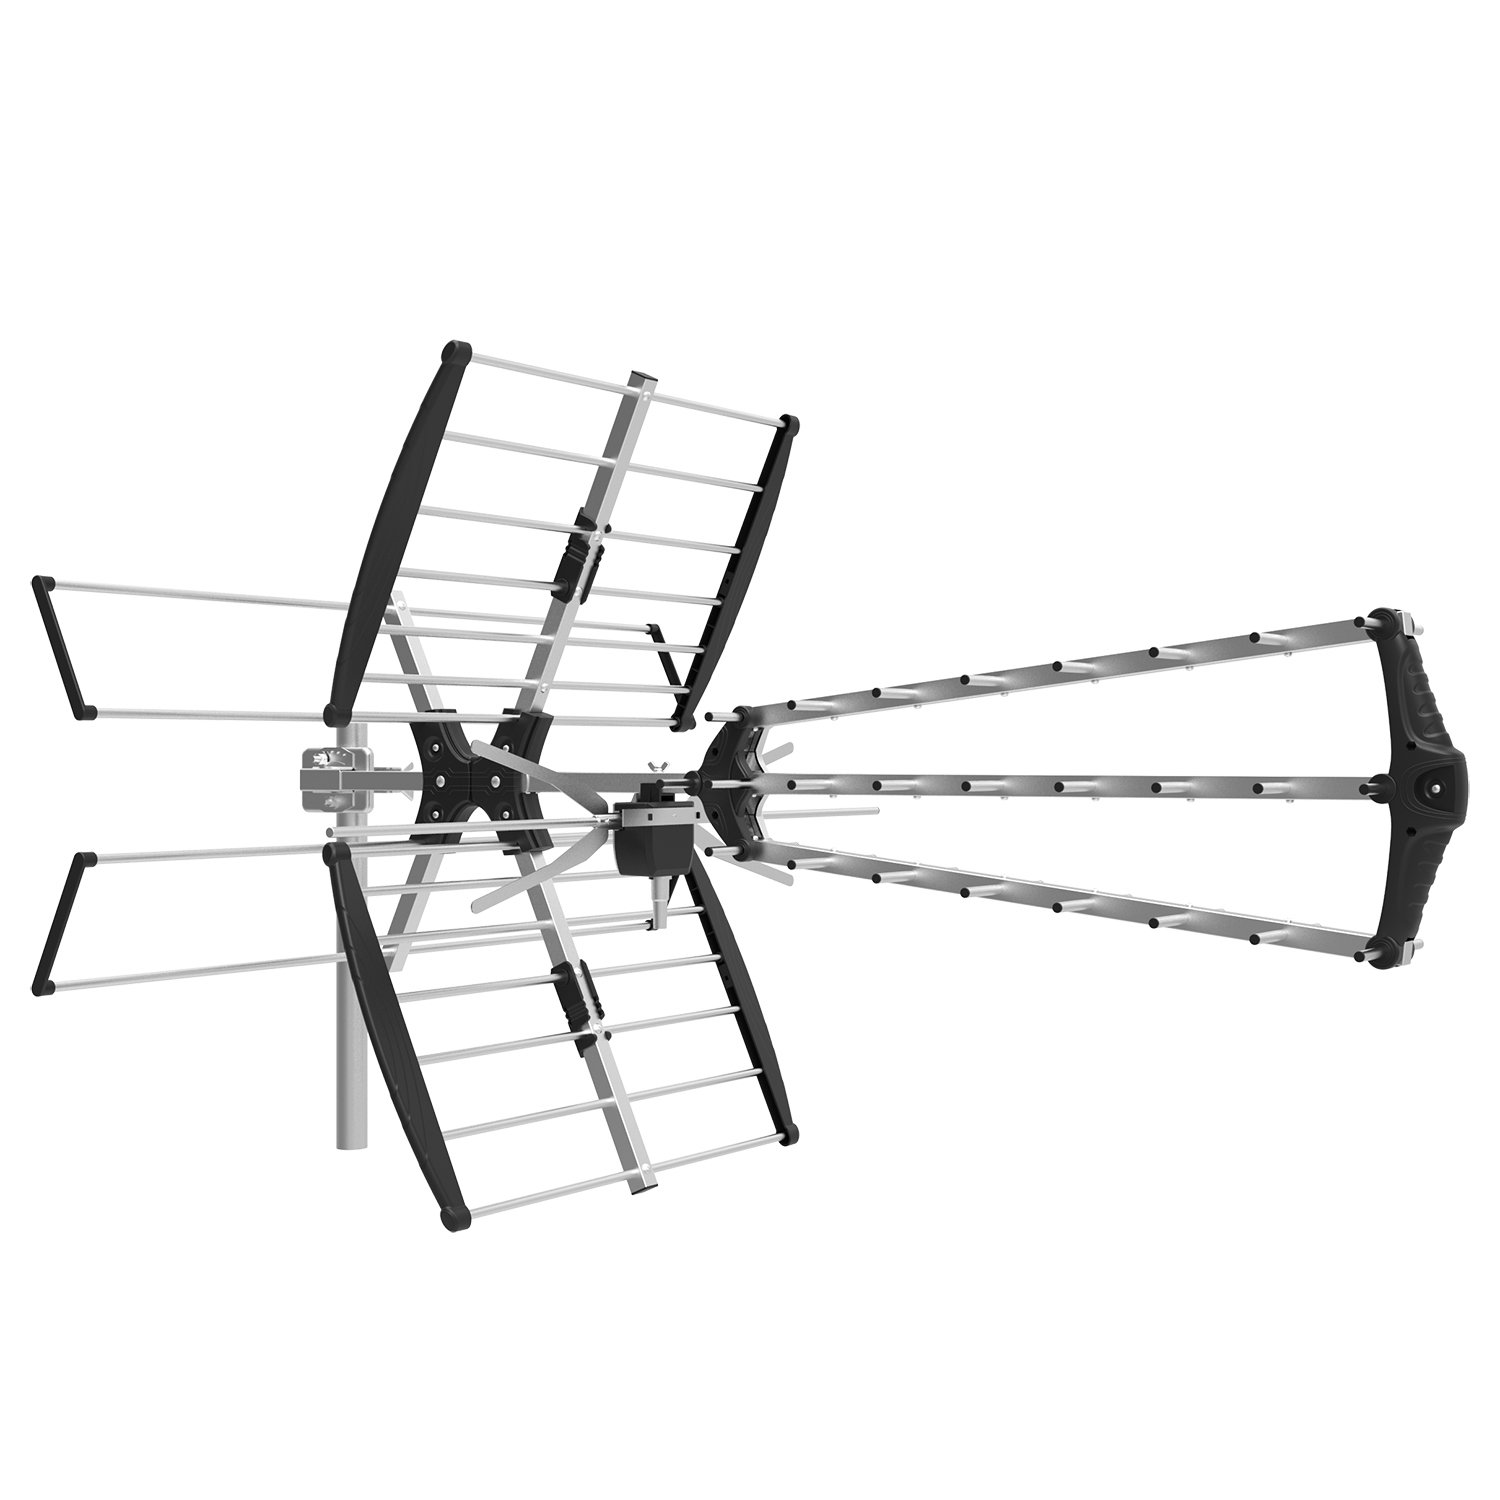 1byone Digital Outdoor Roof Hdtv Antenna High Gain Vhf House Tv Wiring Diagram Uhf Combo 75 Miles Range Extremely Performance Home Audio